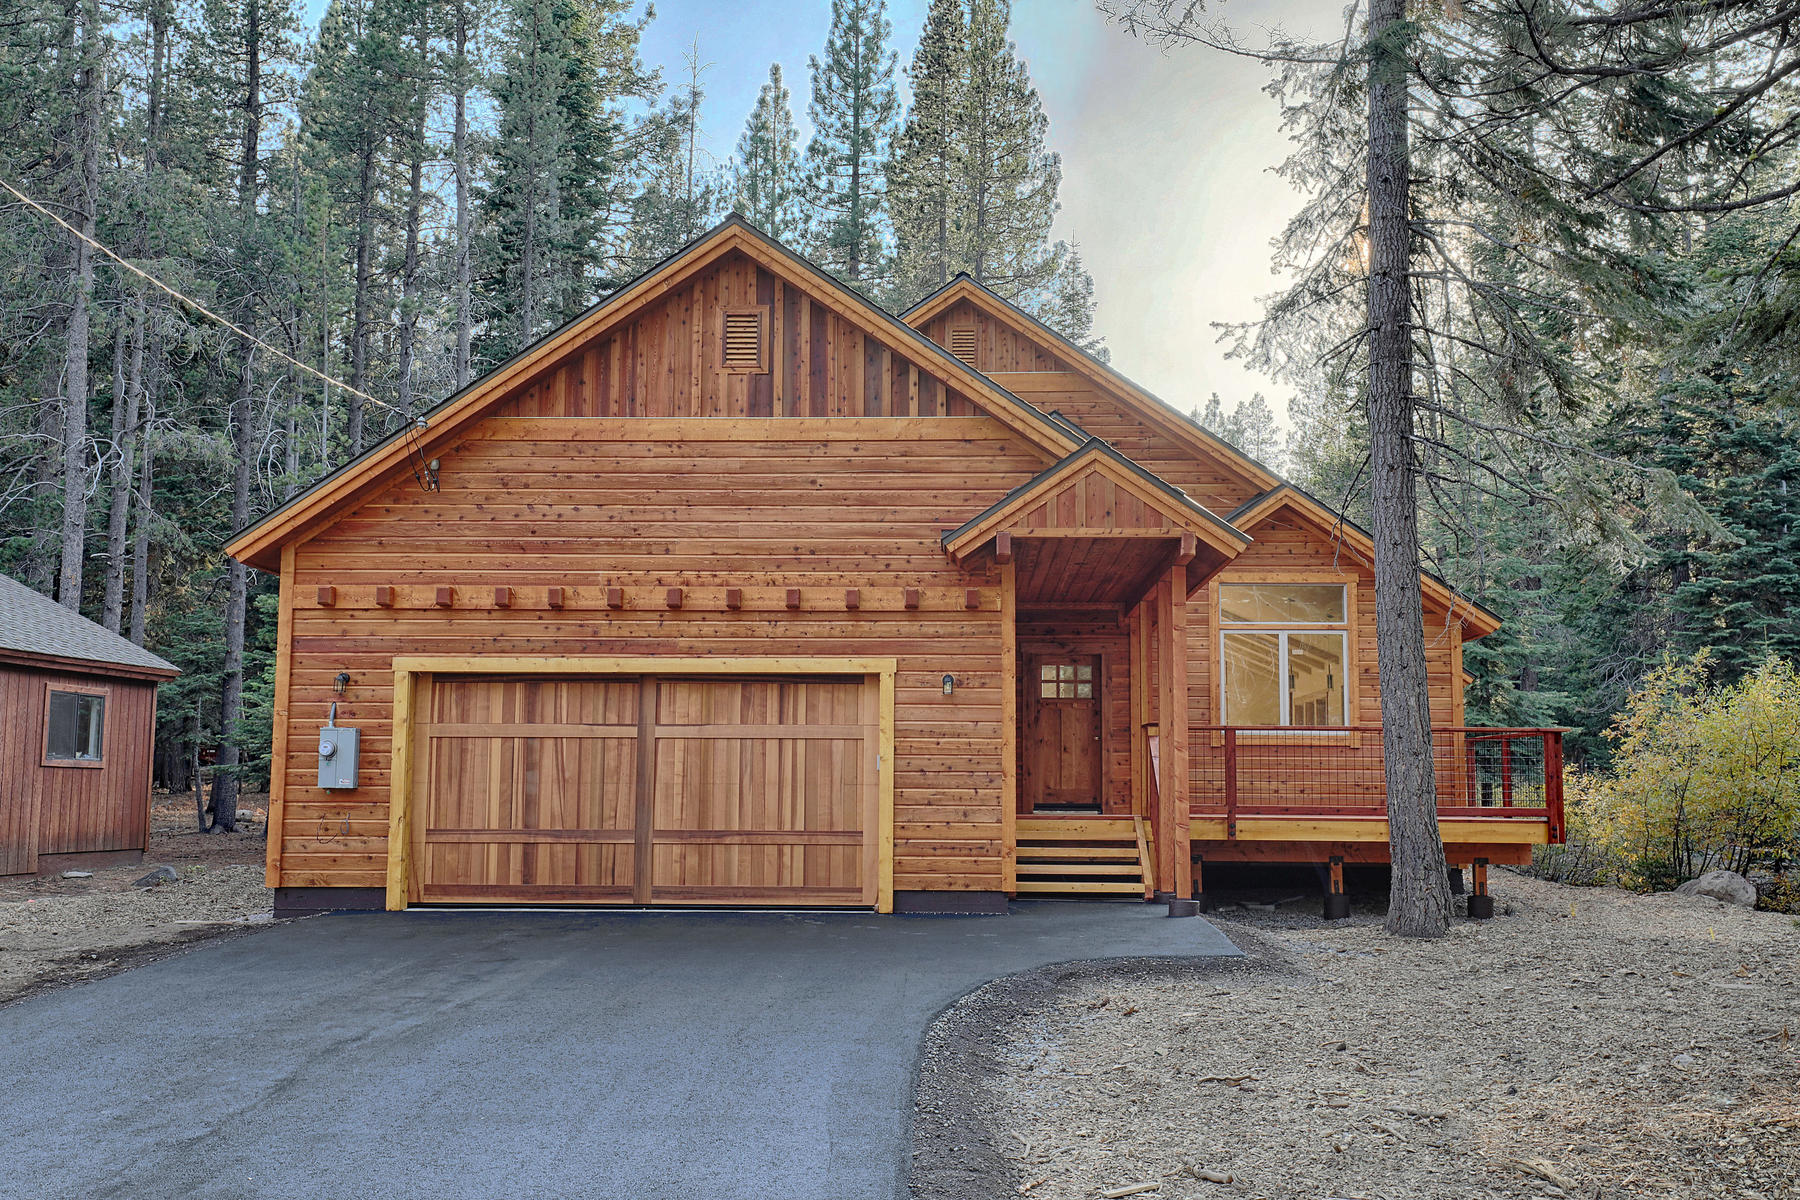 Single Family Homes for Active at Brand New Construction 12016 Mougle Lane Truckee, California 96161 United States